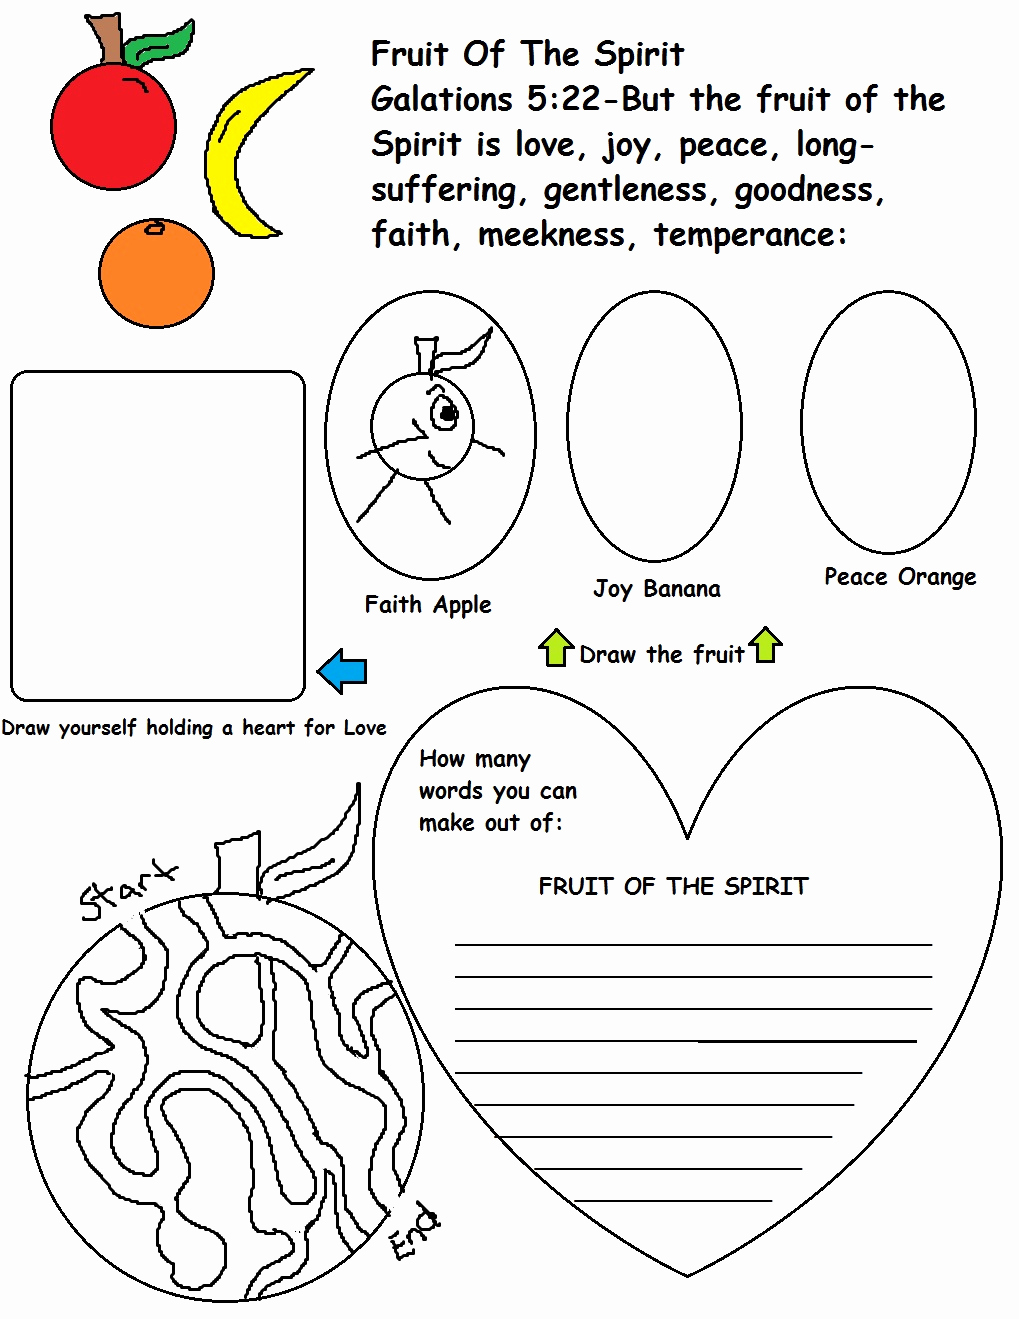 Fruits Of the Spirit Worksheets Luxury Church House Collection Blog Sunday School Lessons